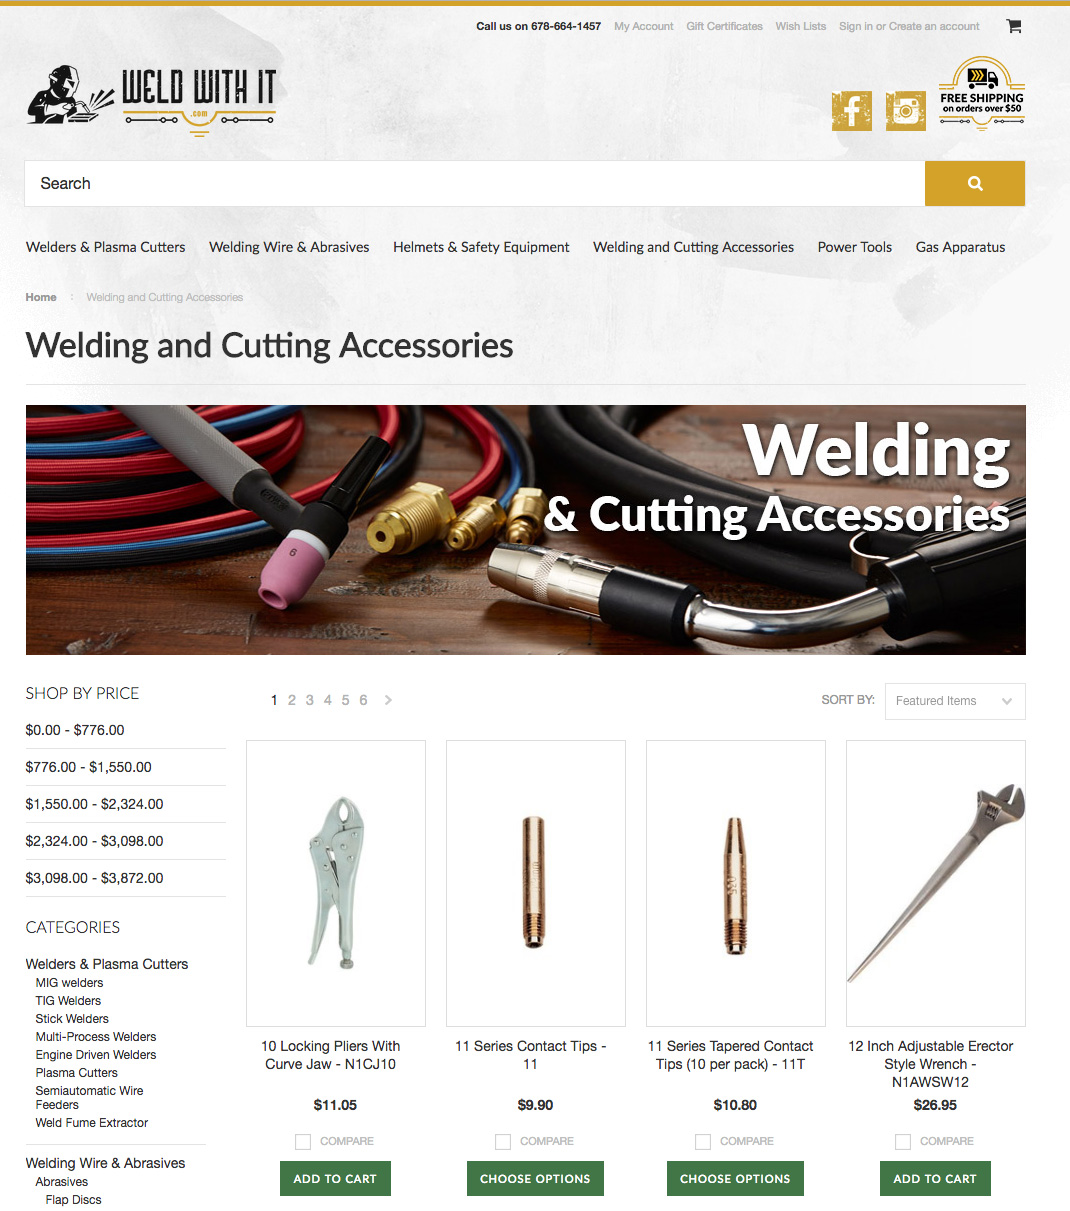 winslett-media-ecommerce-photographer-site-example-02.jpg